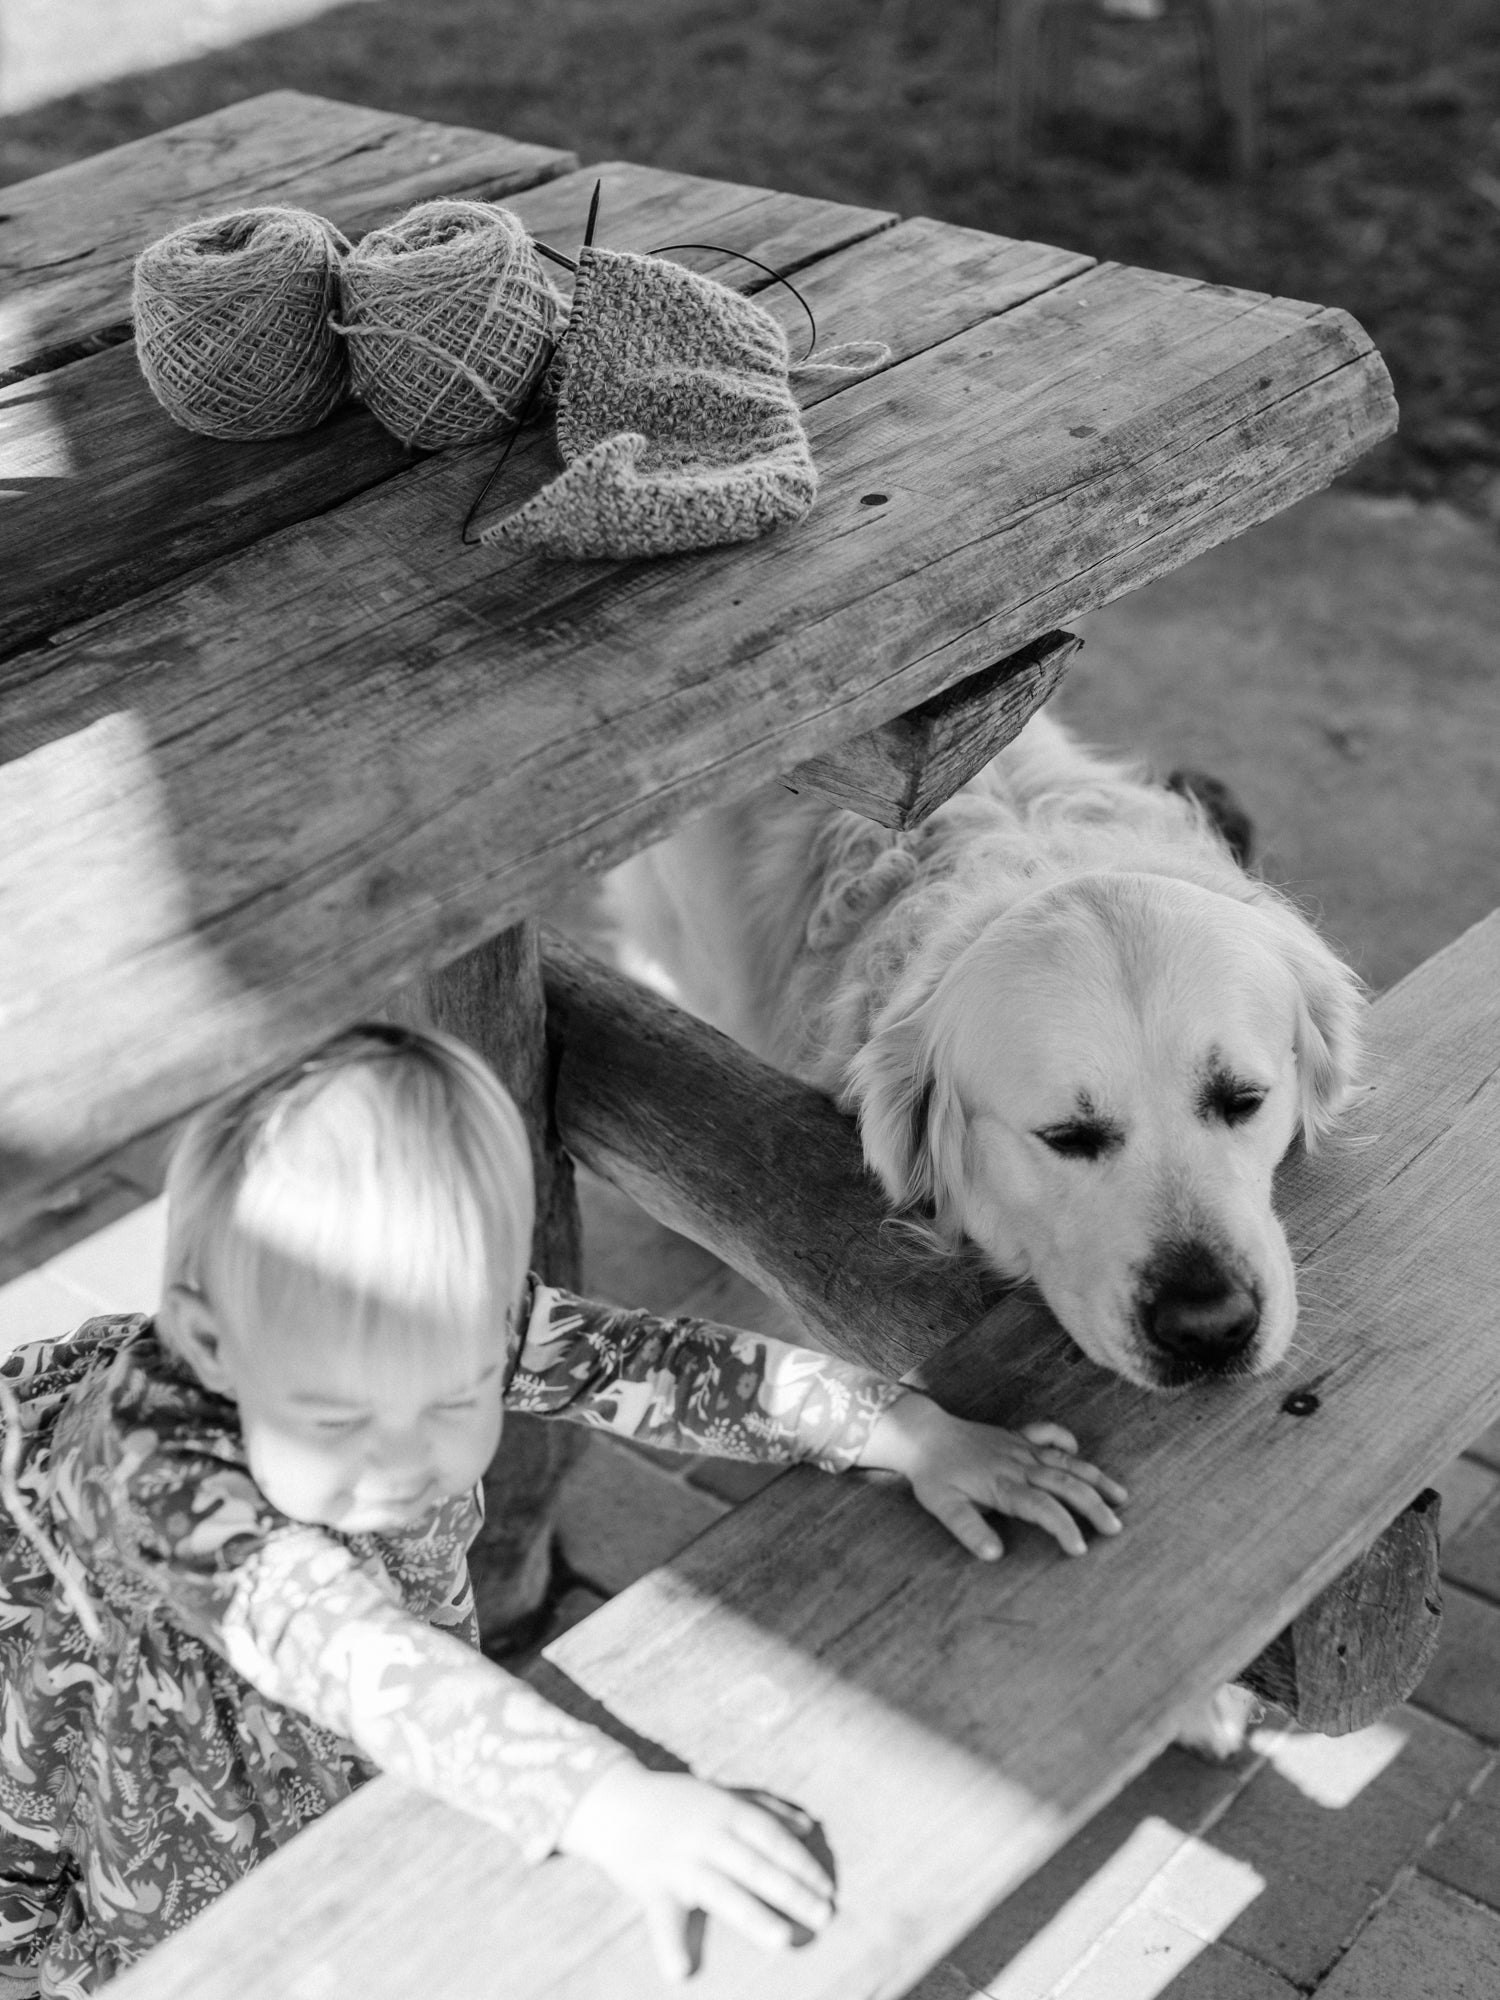 This darling home handspun yarn/knitting on a picnic table with Chester the golden retriever and a little girl playing underneath